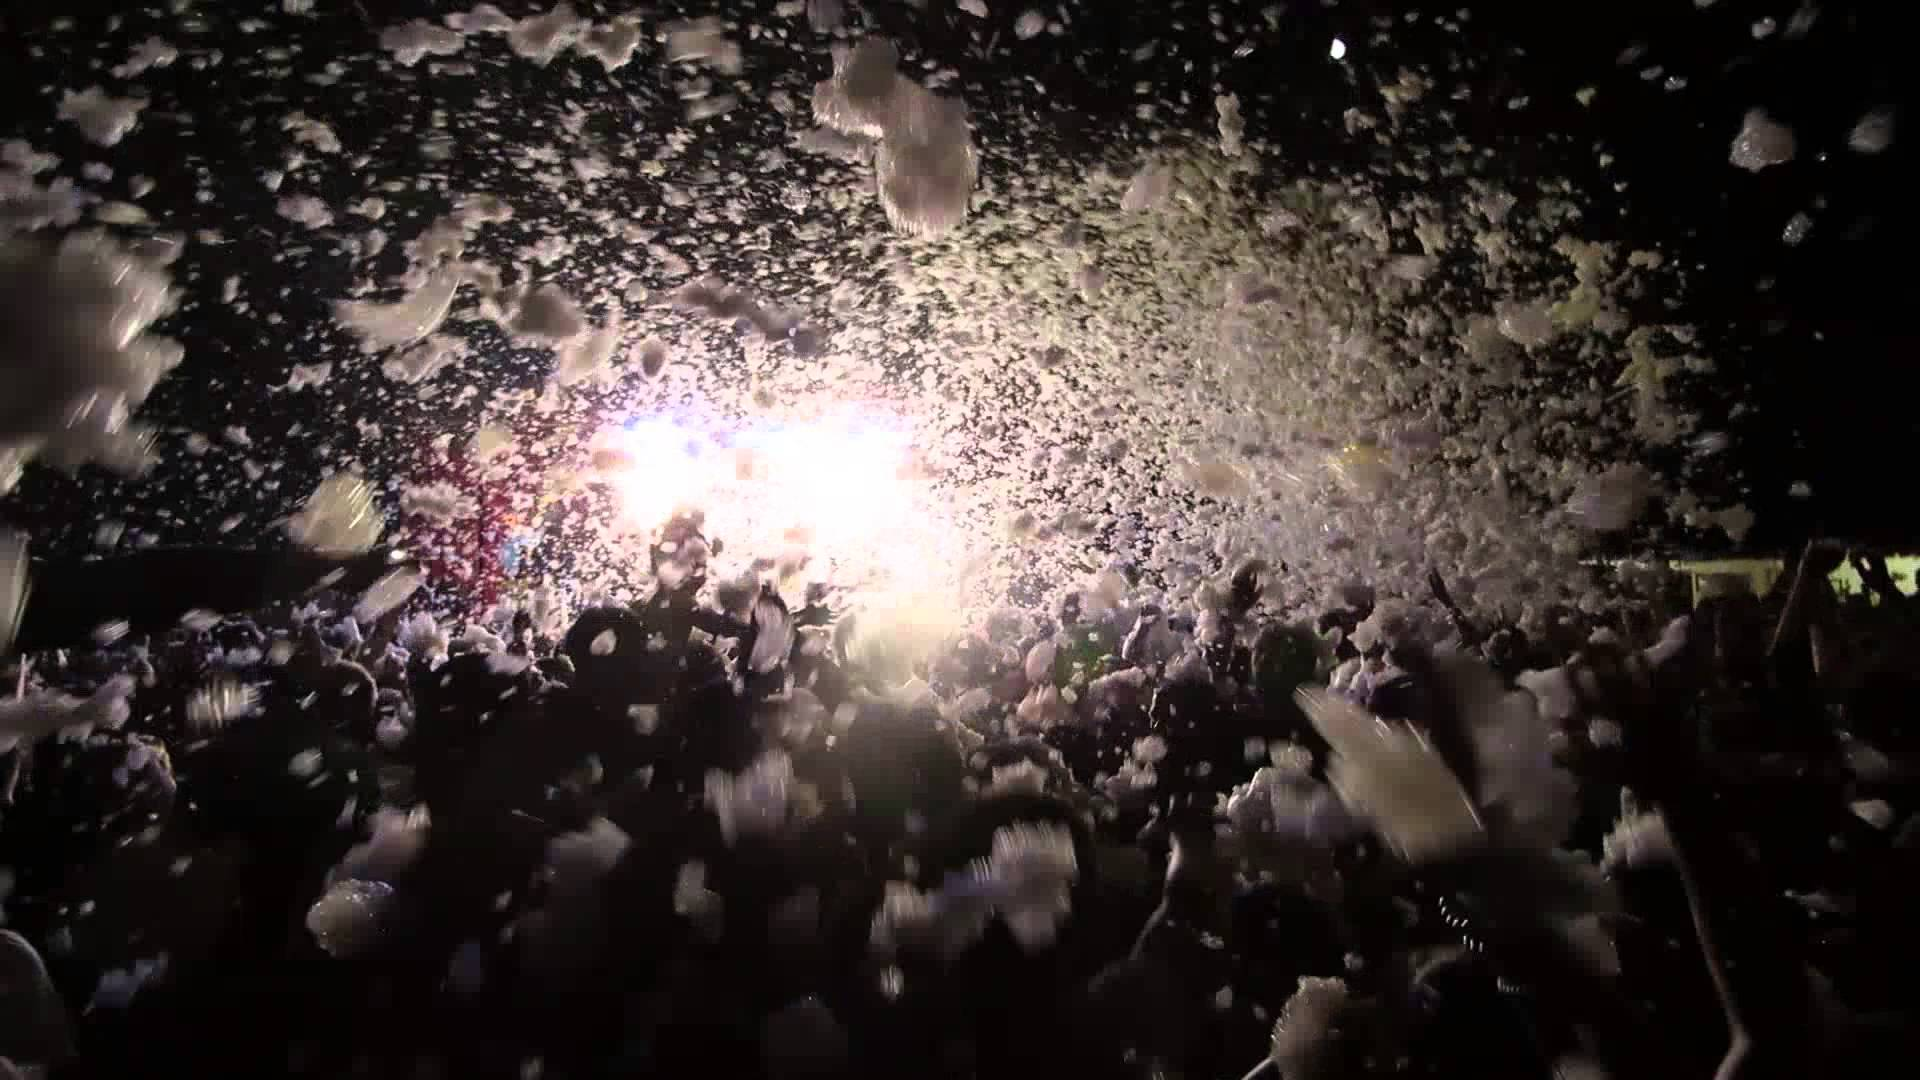 21:30 - CampZone Foam Party